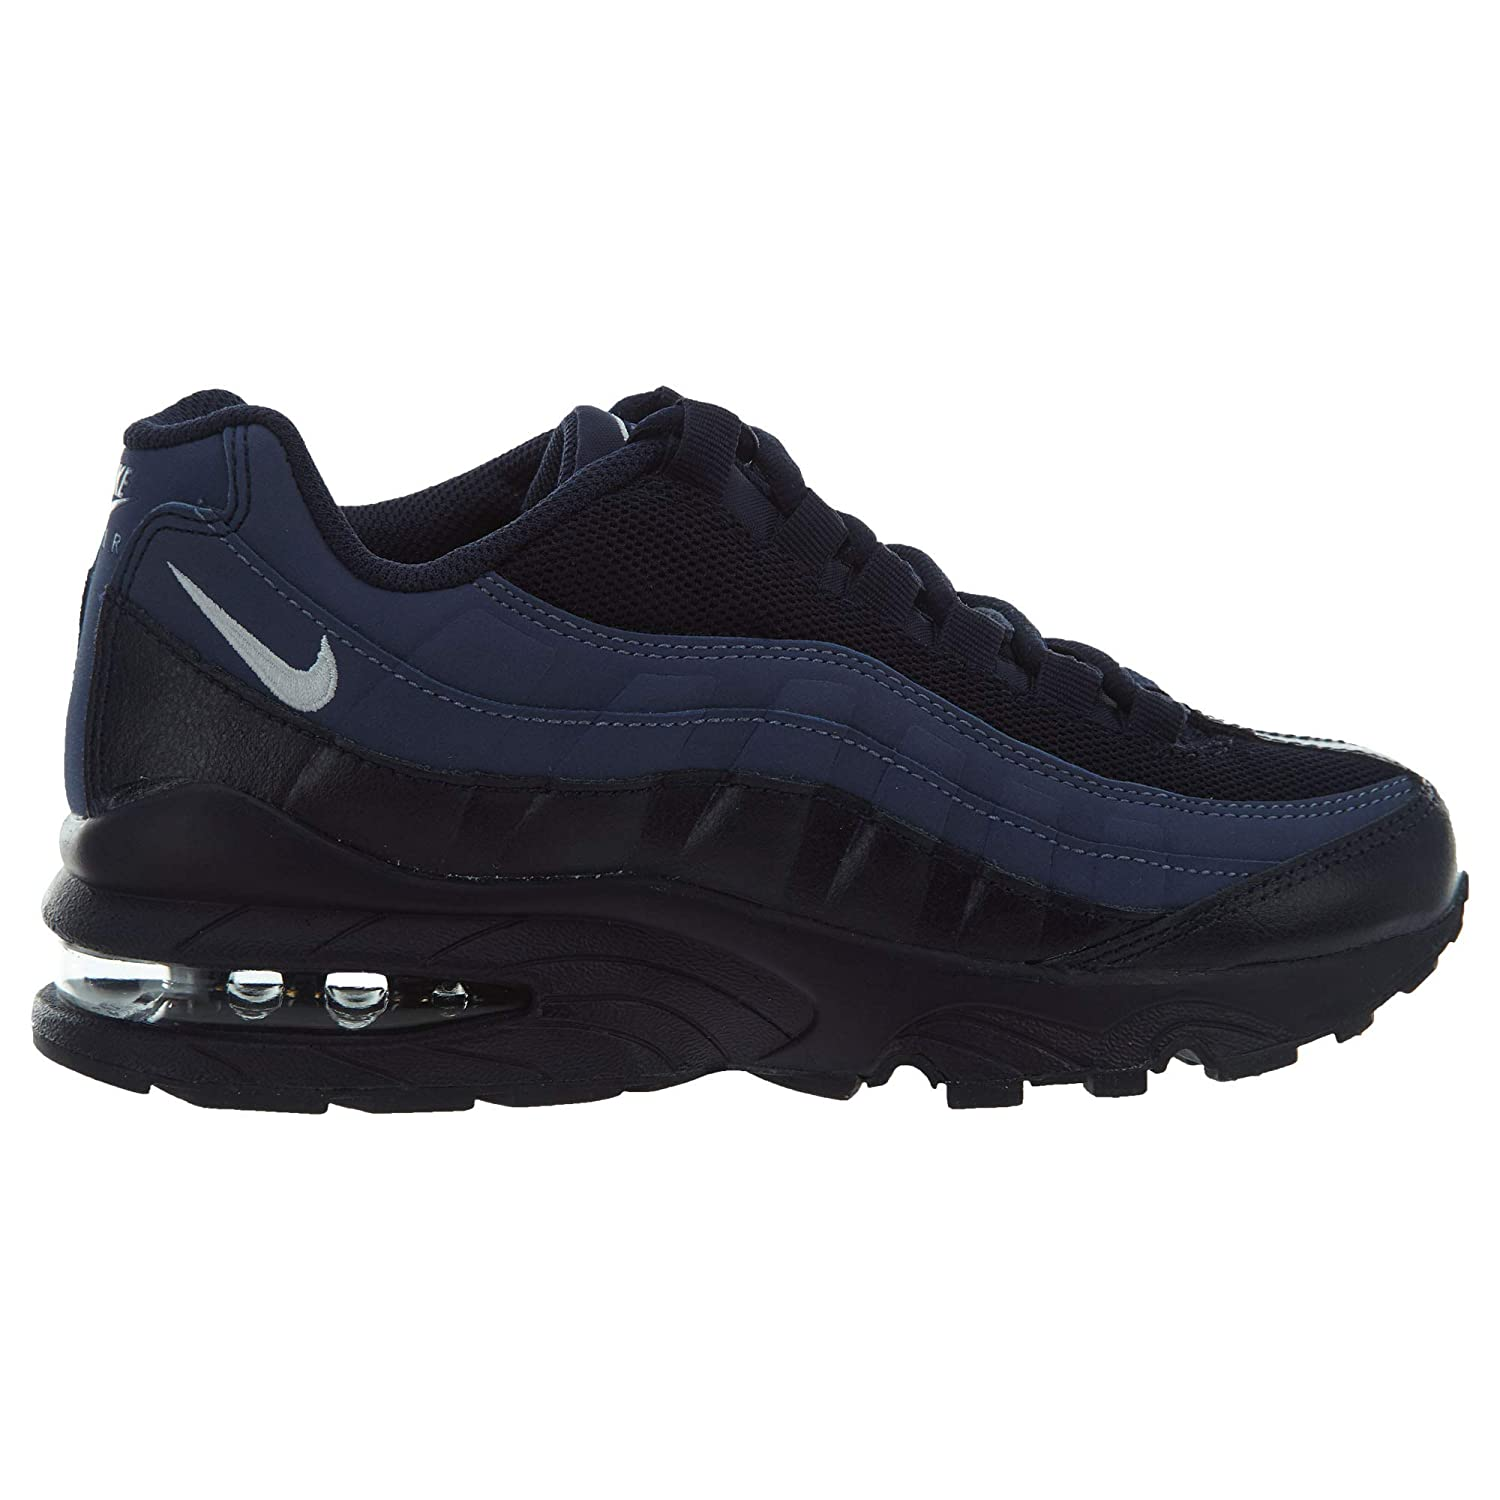 4efe5b316dfe Amazon.com  Nike Air Max 95  Nike  Shoes